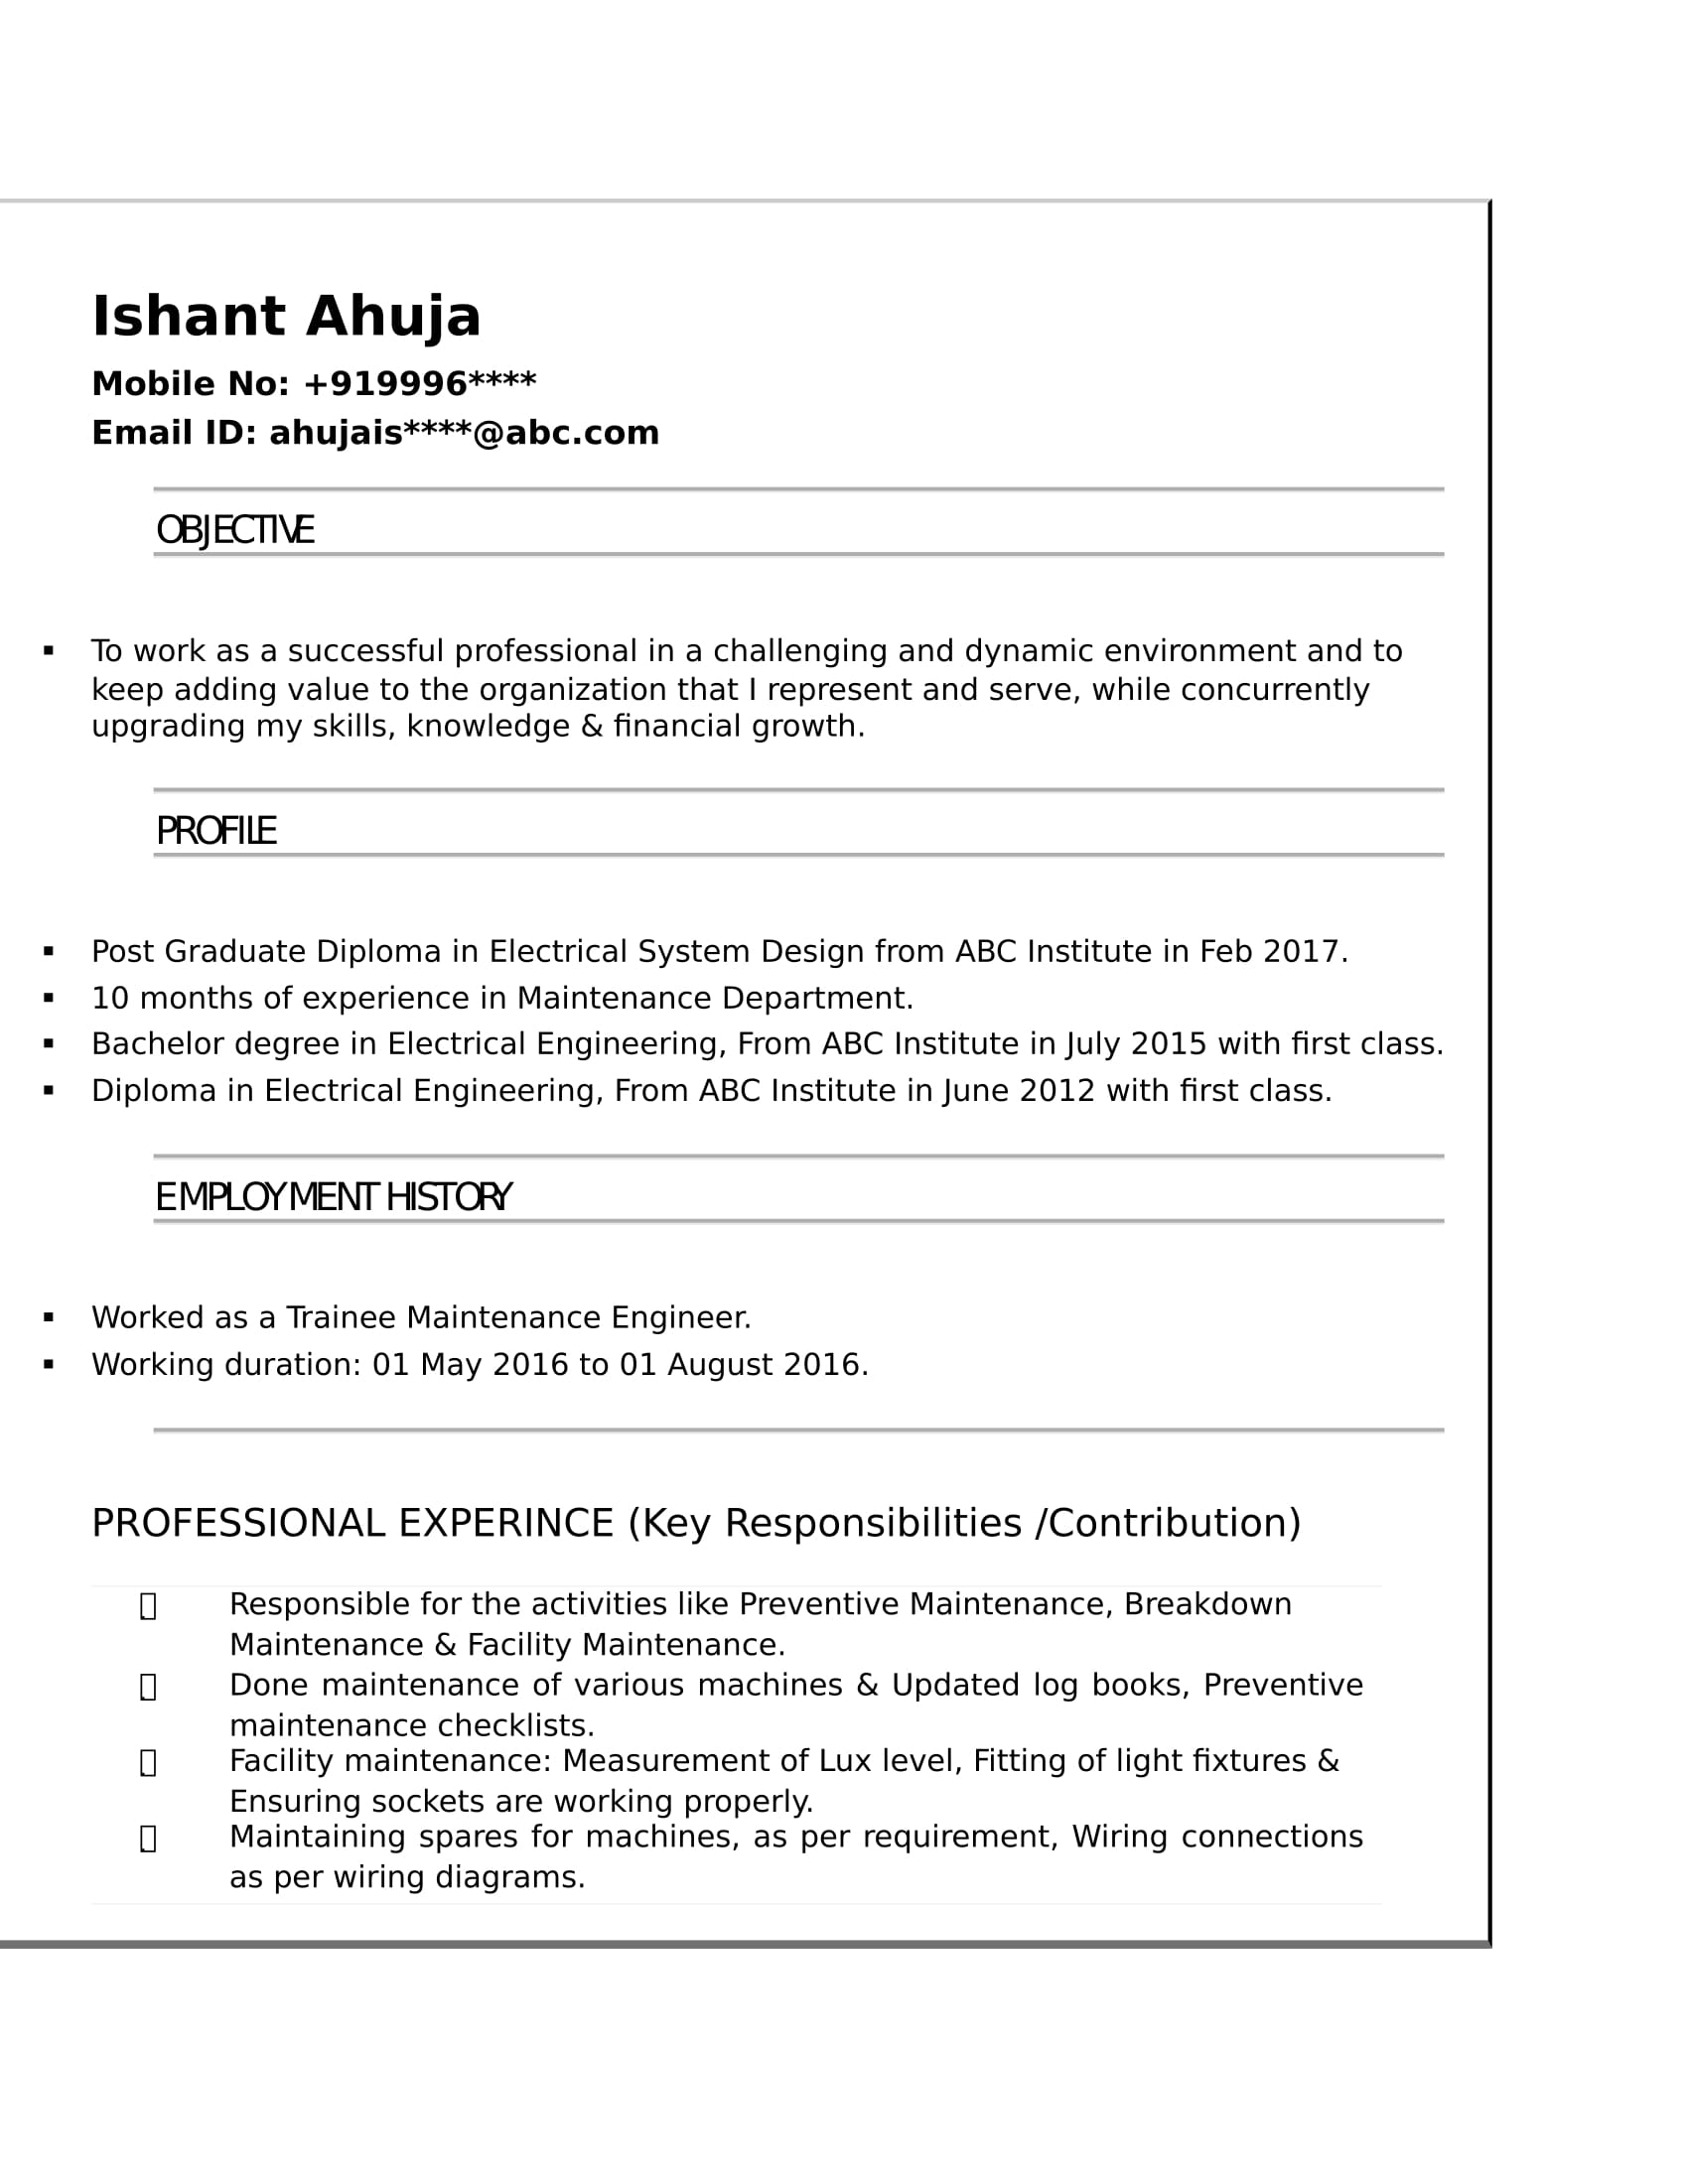 resume templates for electrical engineer freshers